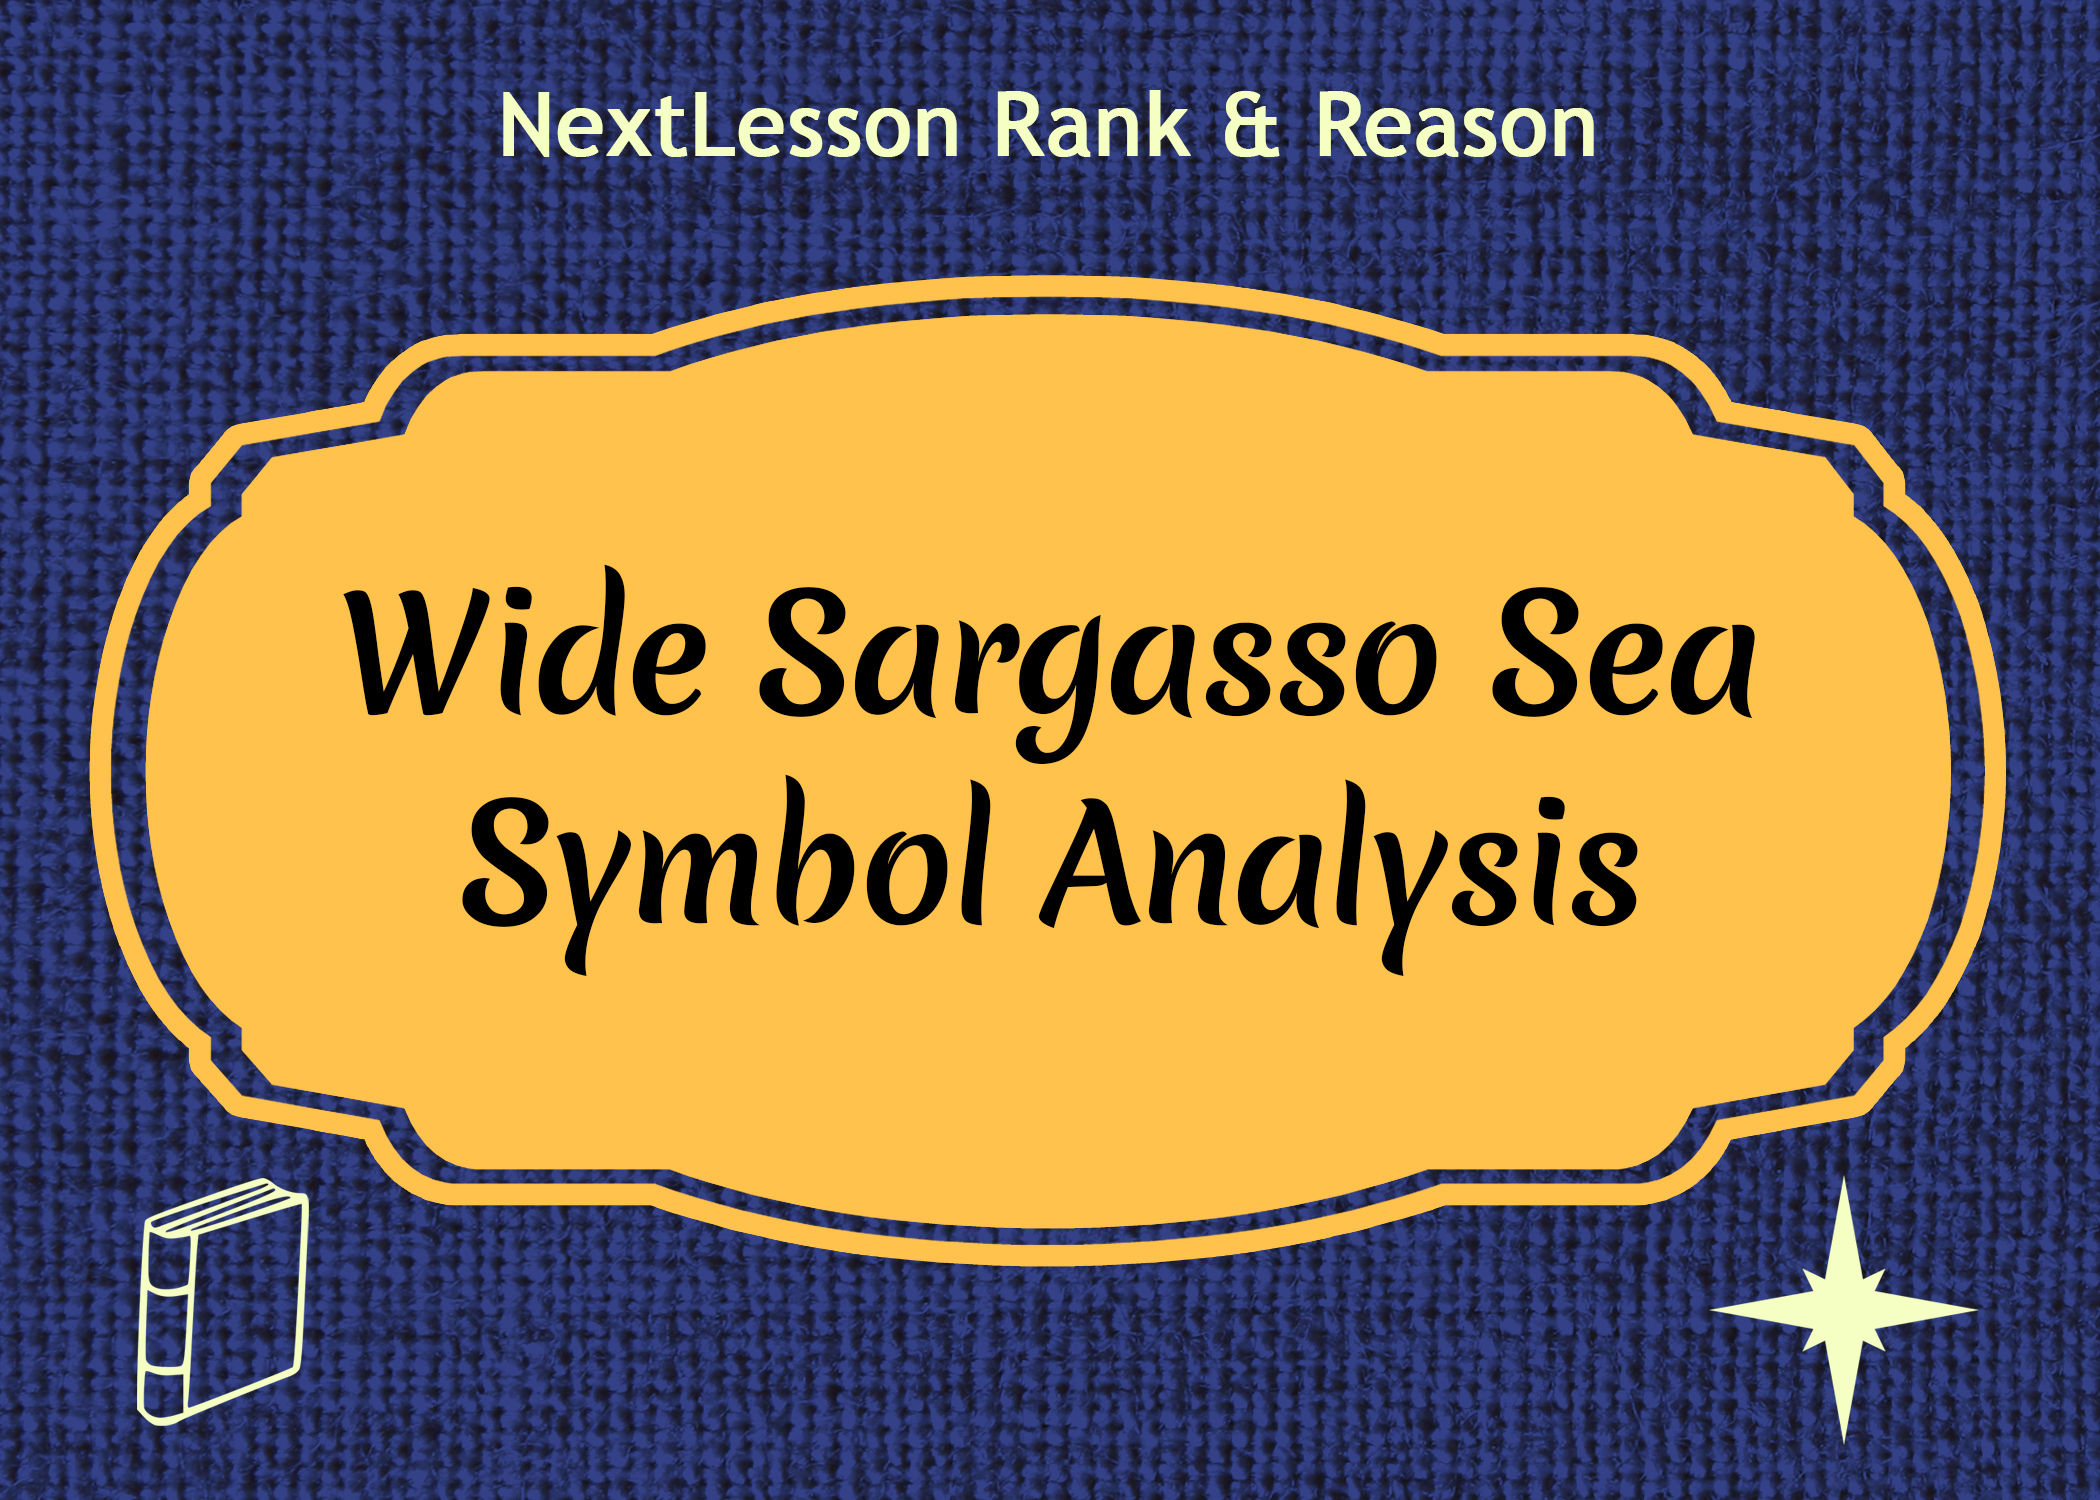 an introduction to the literary analysis of wide sargasso sea by jean rhys Table of content 1 introduction   11 jean rhys and wide sargasso sea   another theme from annie john which kenney elaborates on is that of a lost.